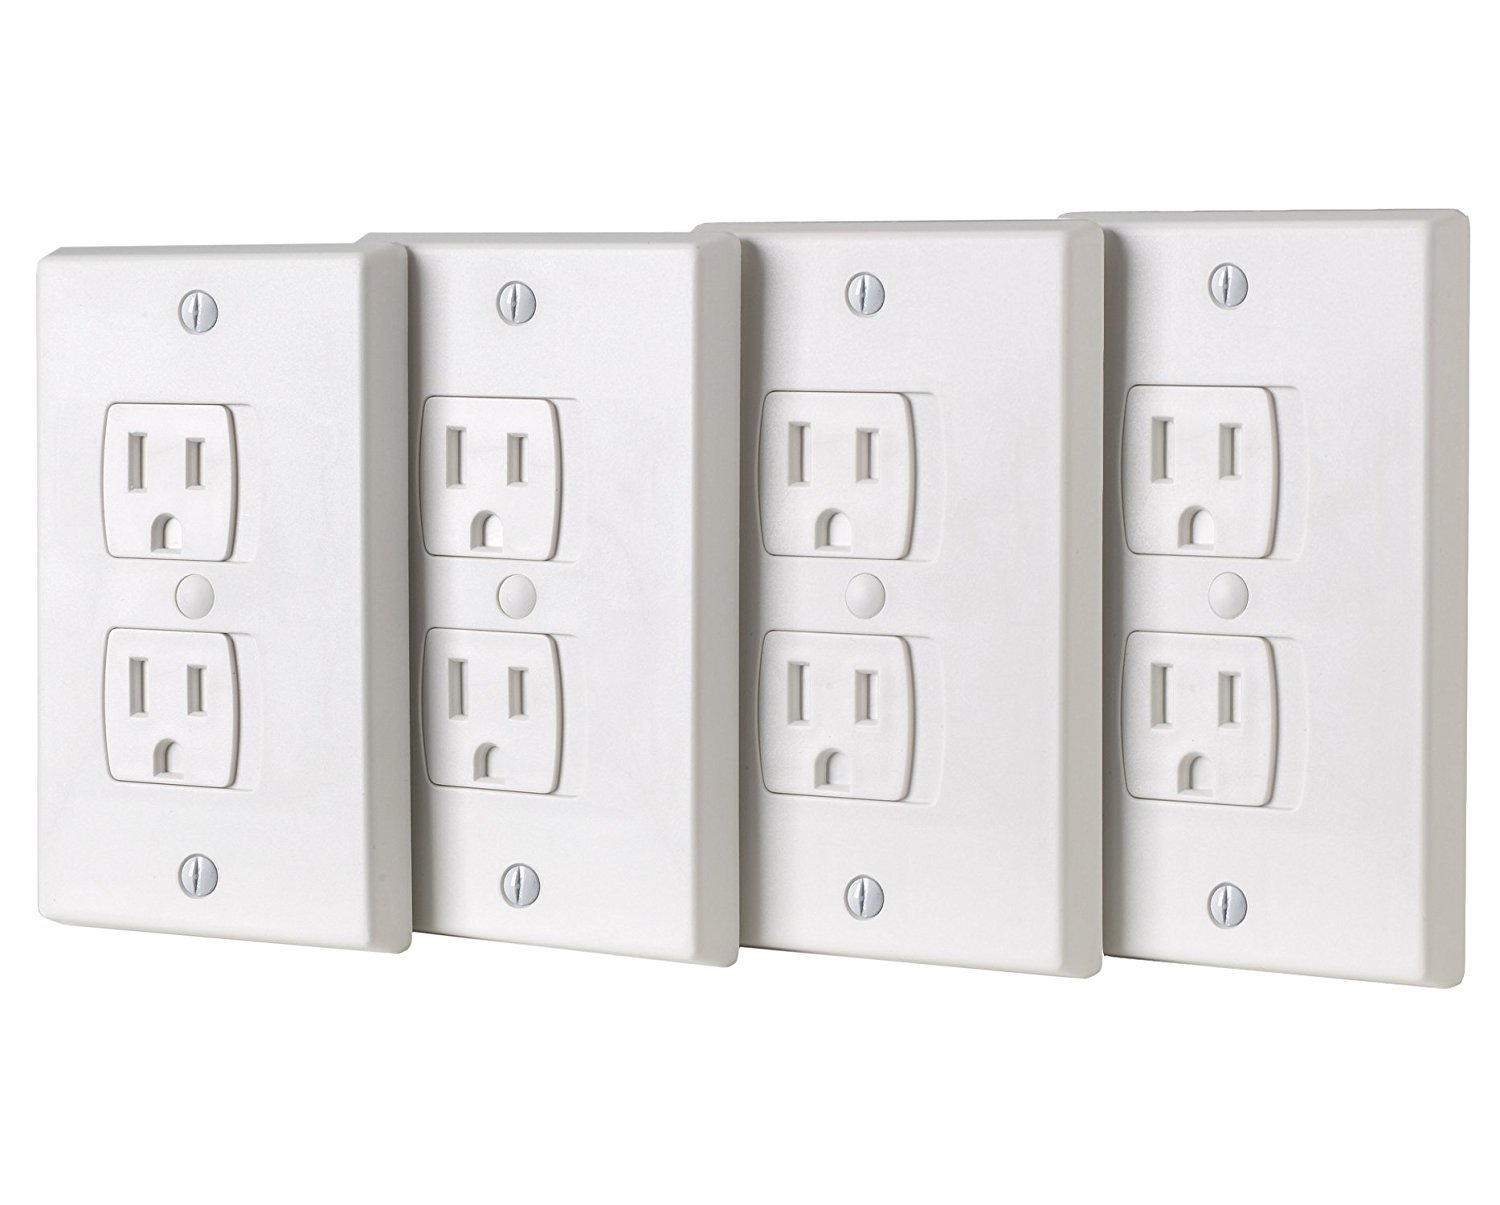 Alysontech Baby Safety Power Outlet Wall Cover - Tamper Resistant Replacement Outlet Cover/Closing Wall Socket Plugs Plate Alternate for Child Proofing (4 Pack)